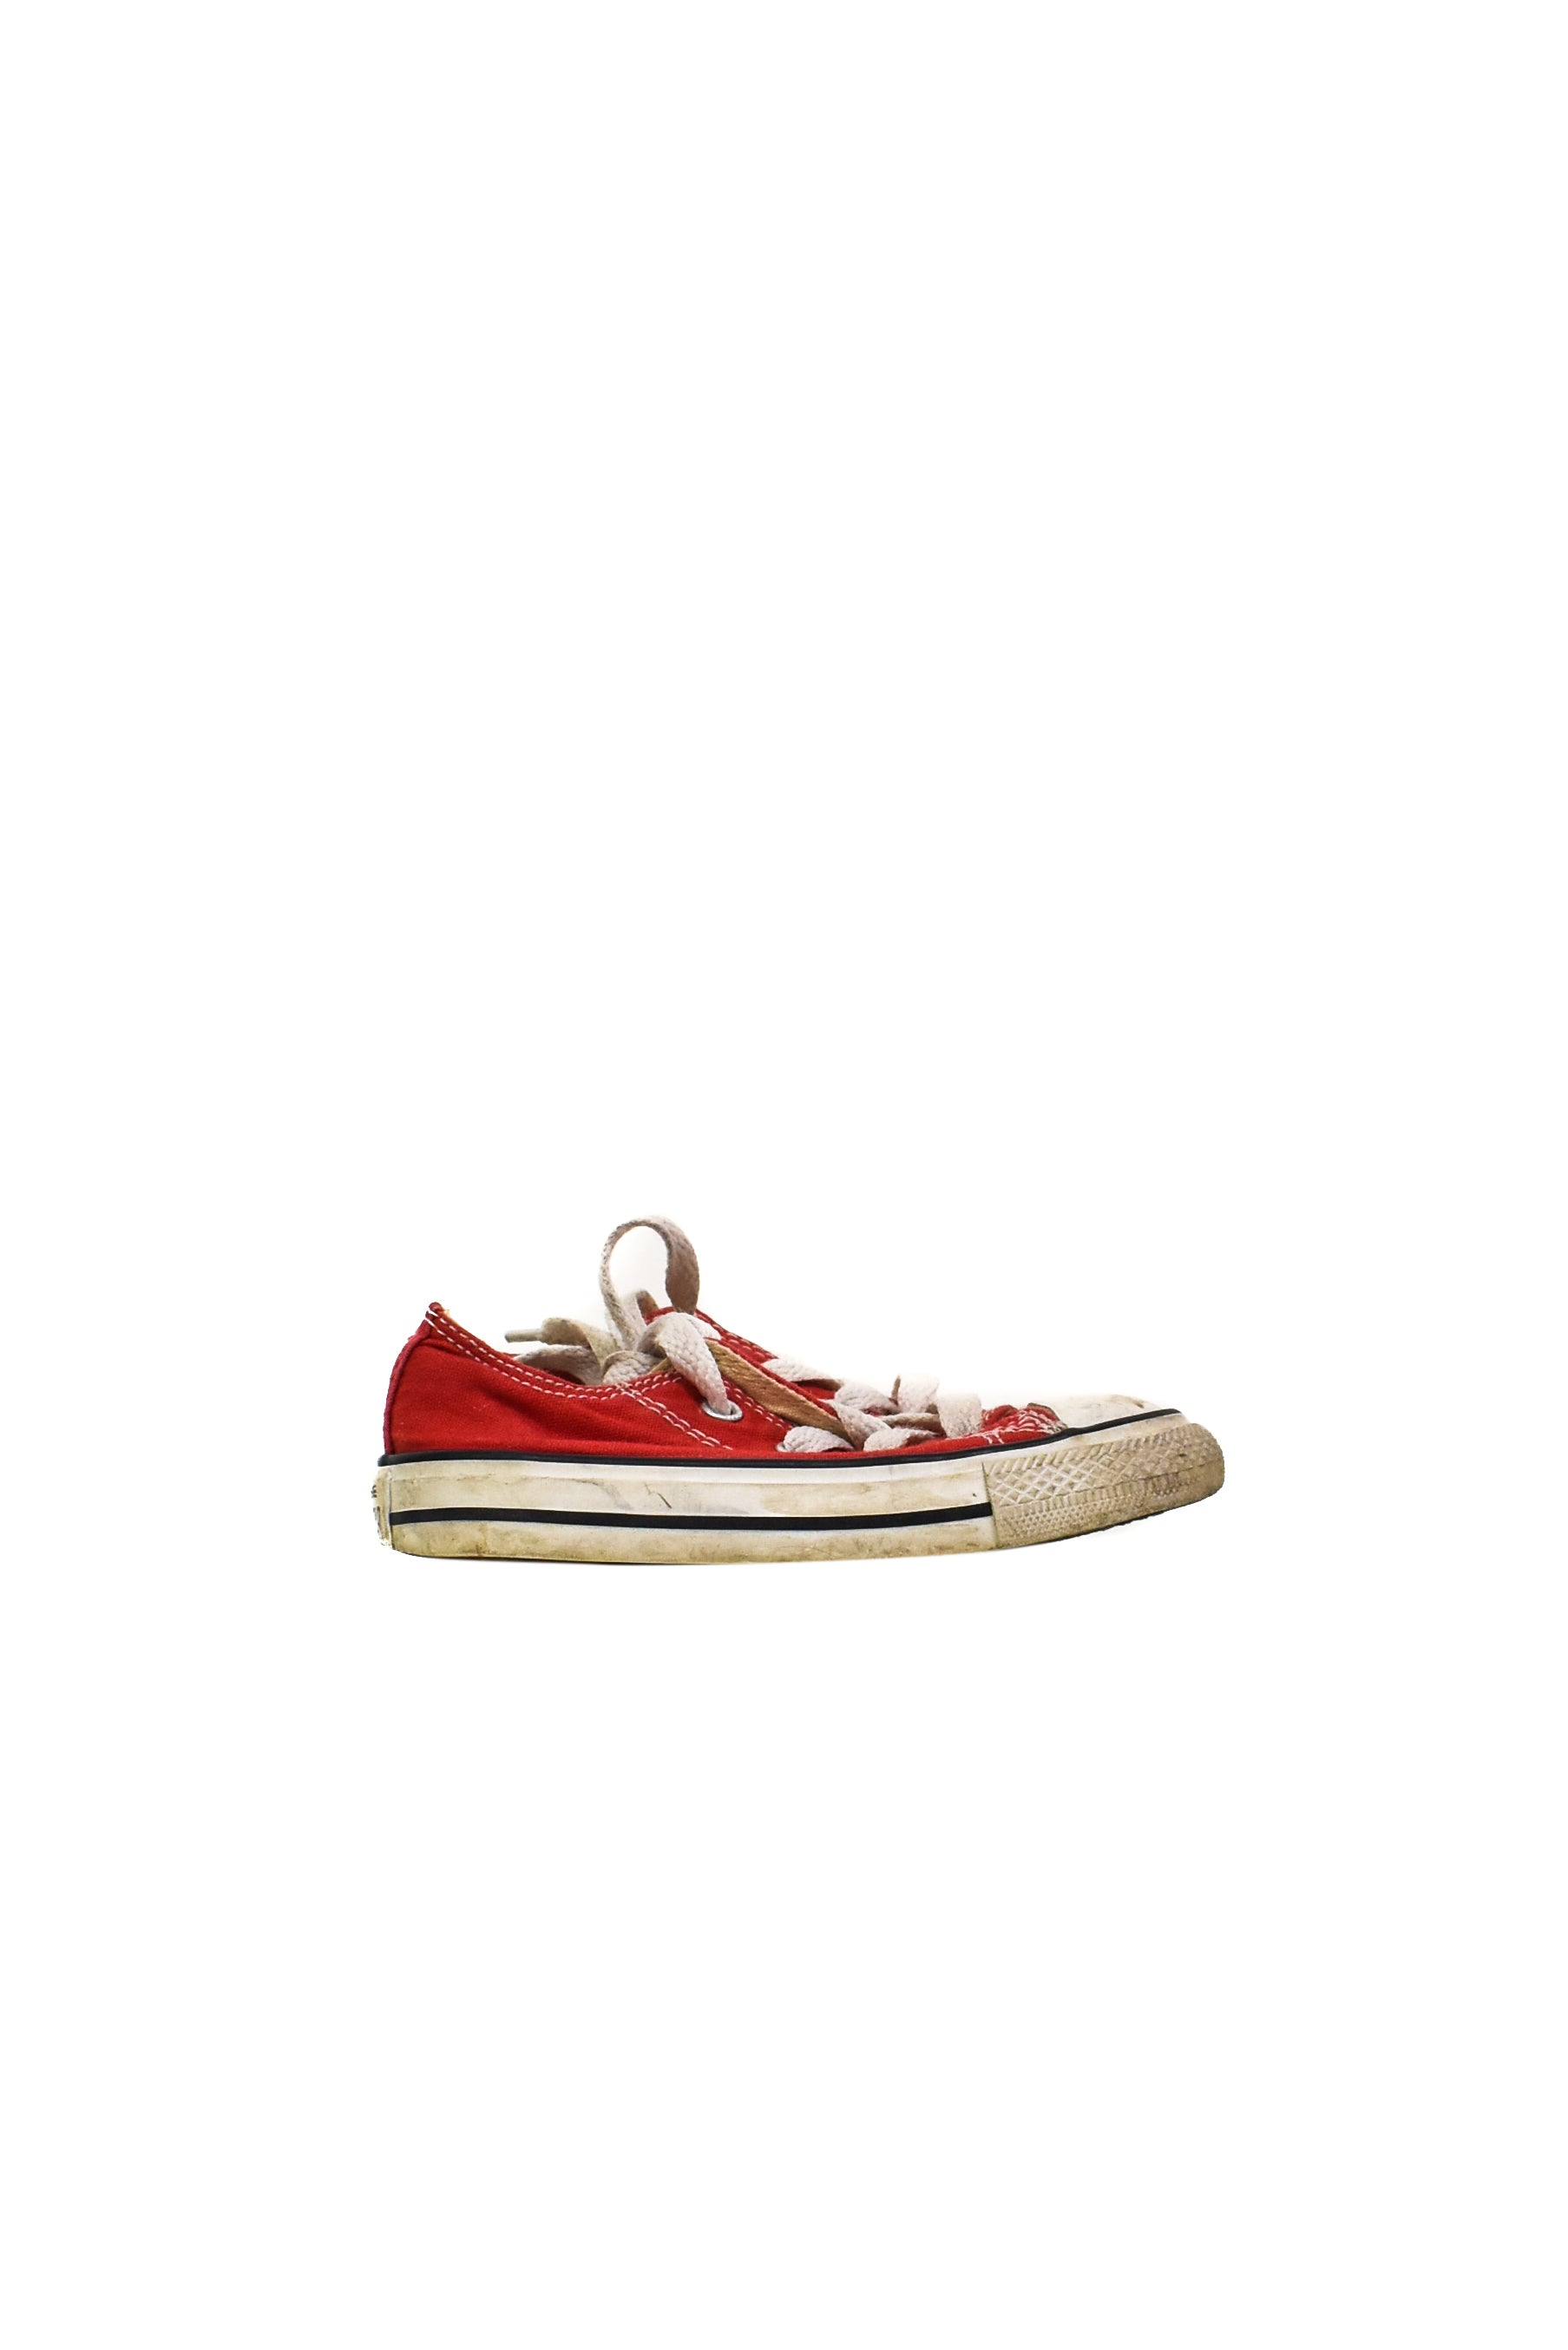 fc250029187f ... chuck taylor all star canvas low top sneaker pink 9 m c9ad8 ebddb   coupon code for 10013835 converse kids shoes 3t eu 25 us 9 at retykle 2a6e3  3e196